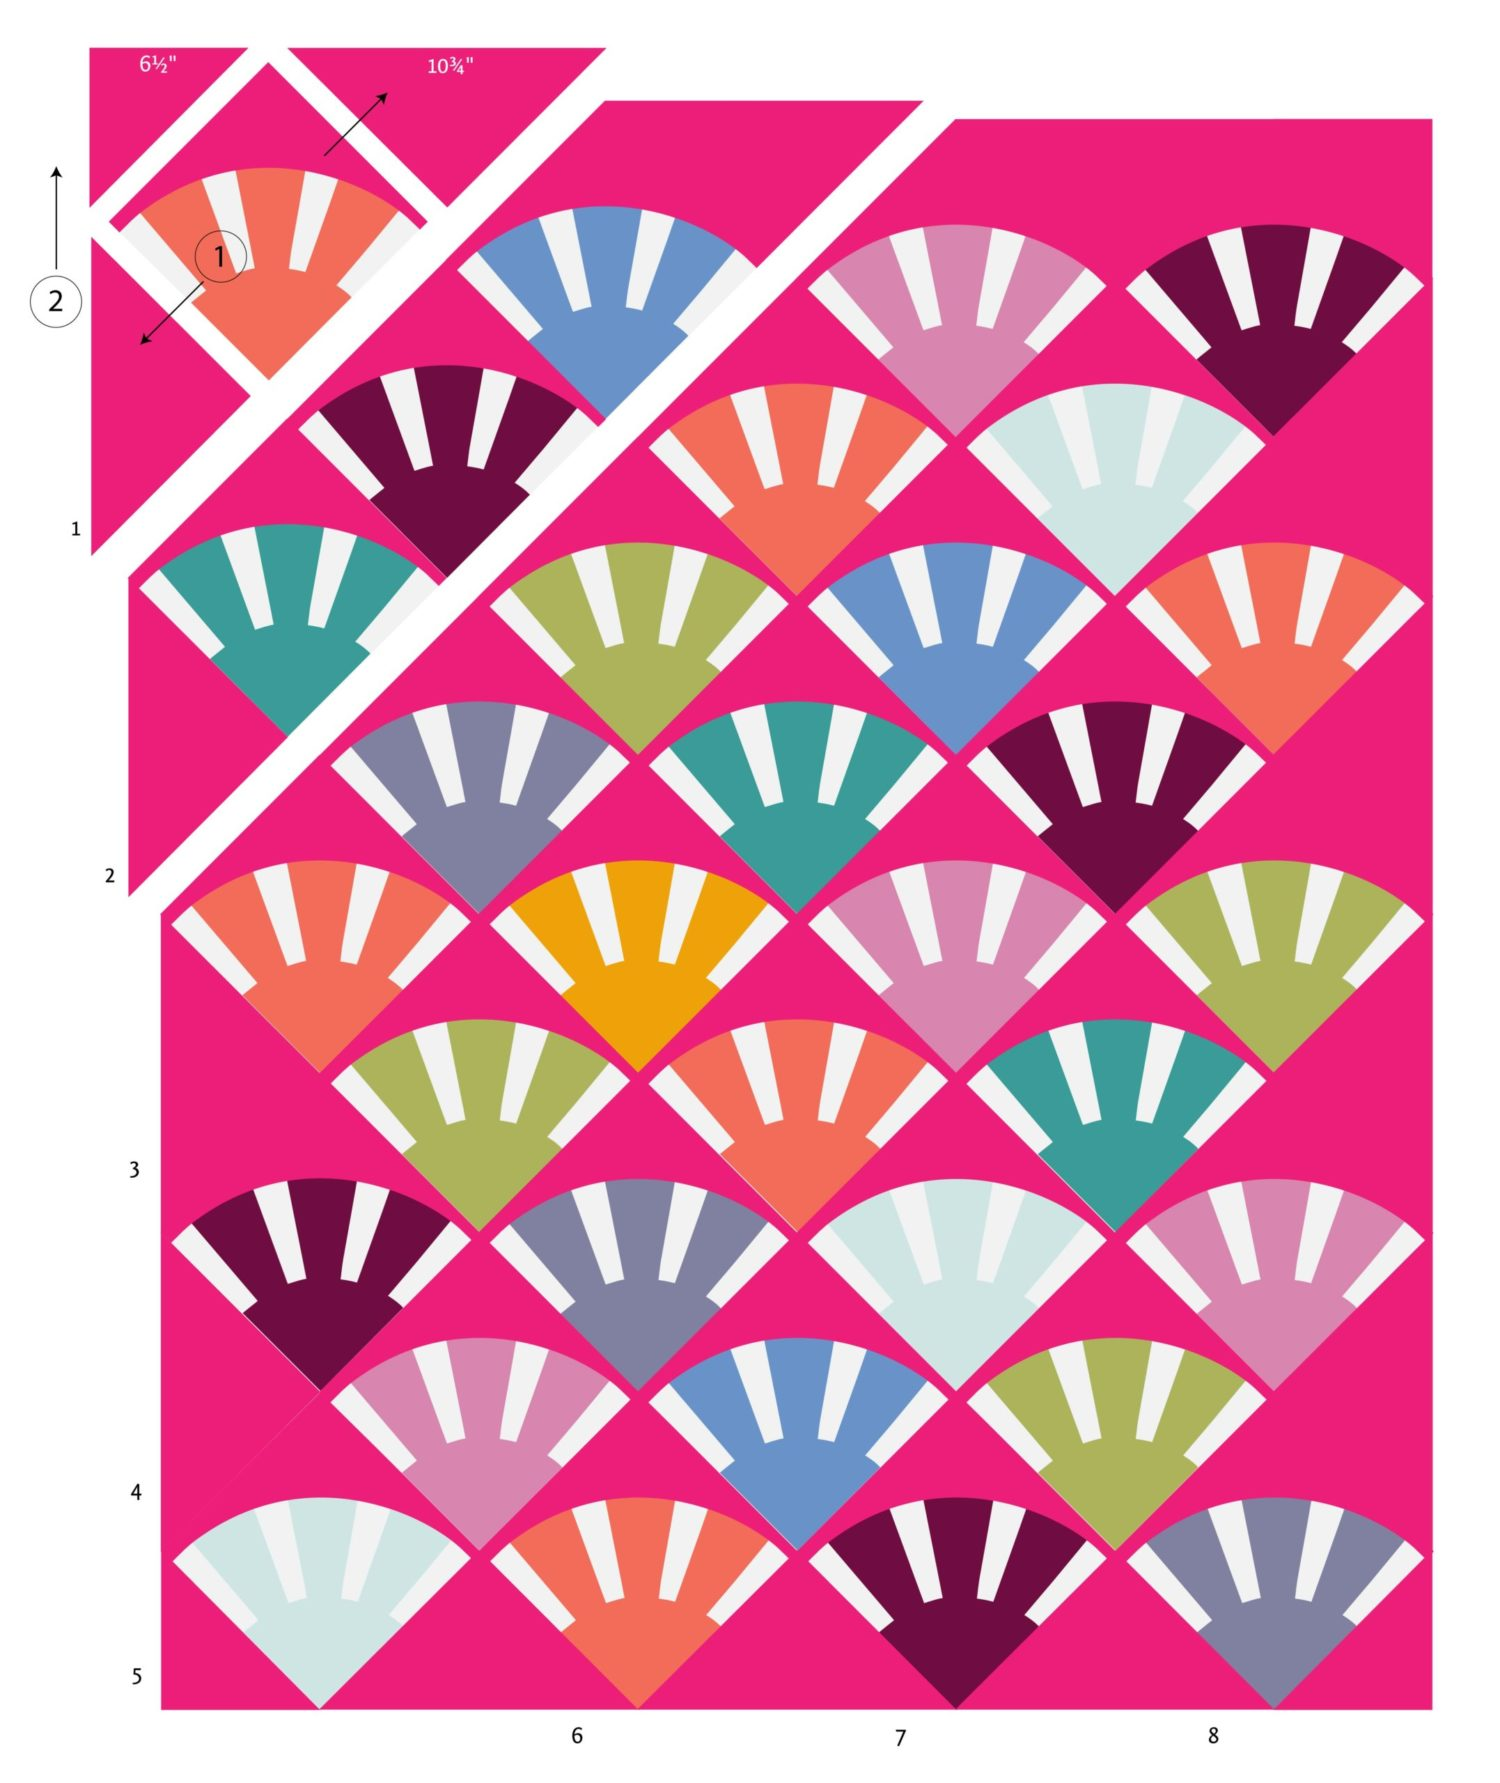 Sunbeam quilt pattern layout variation by Color Girl Quilts